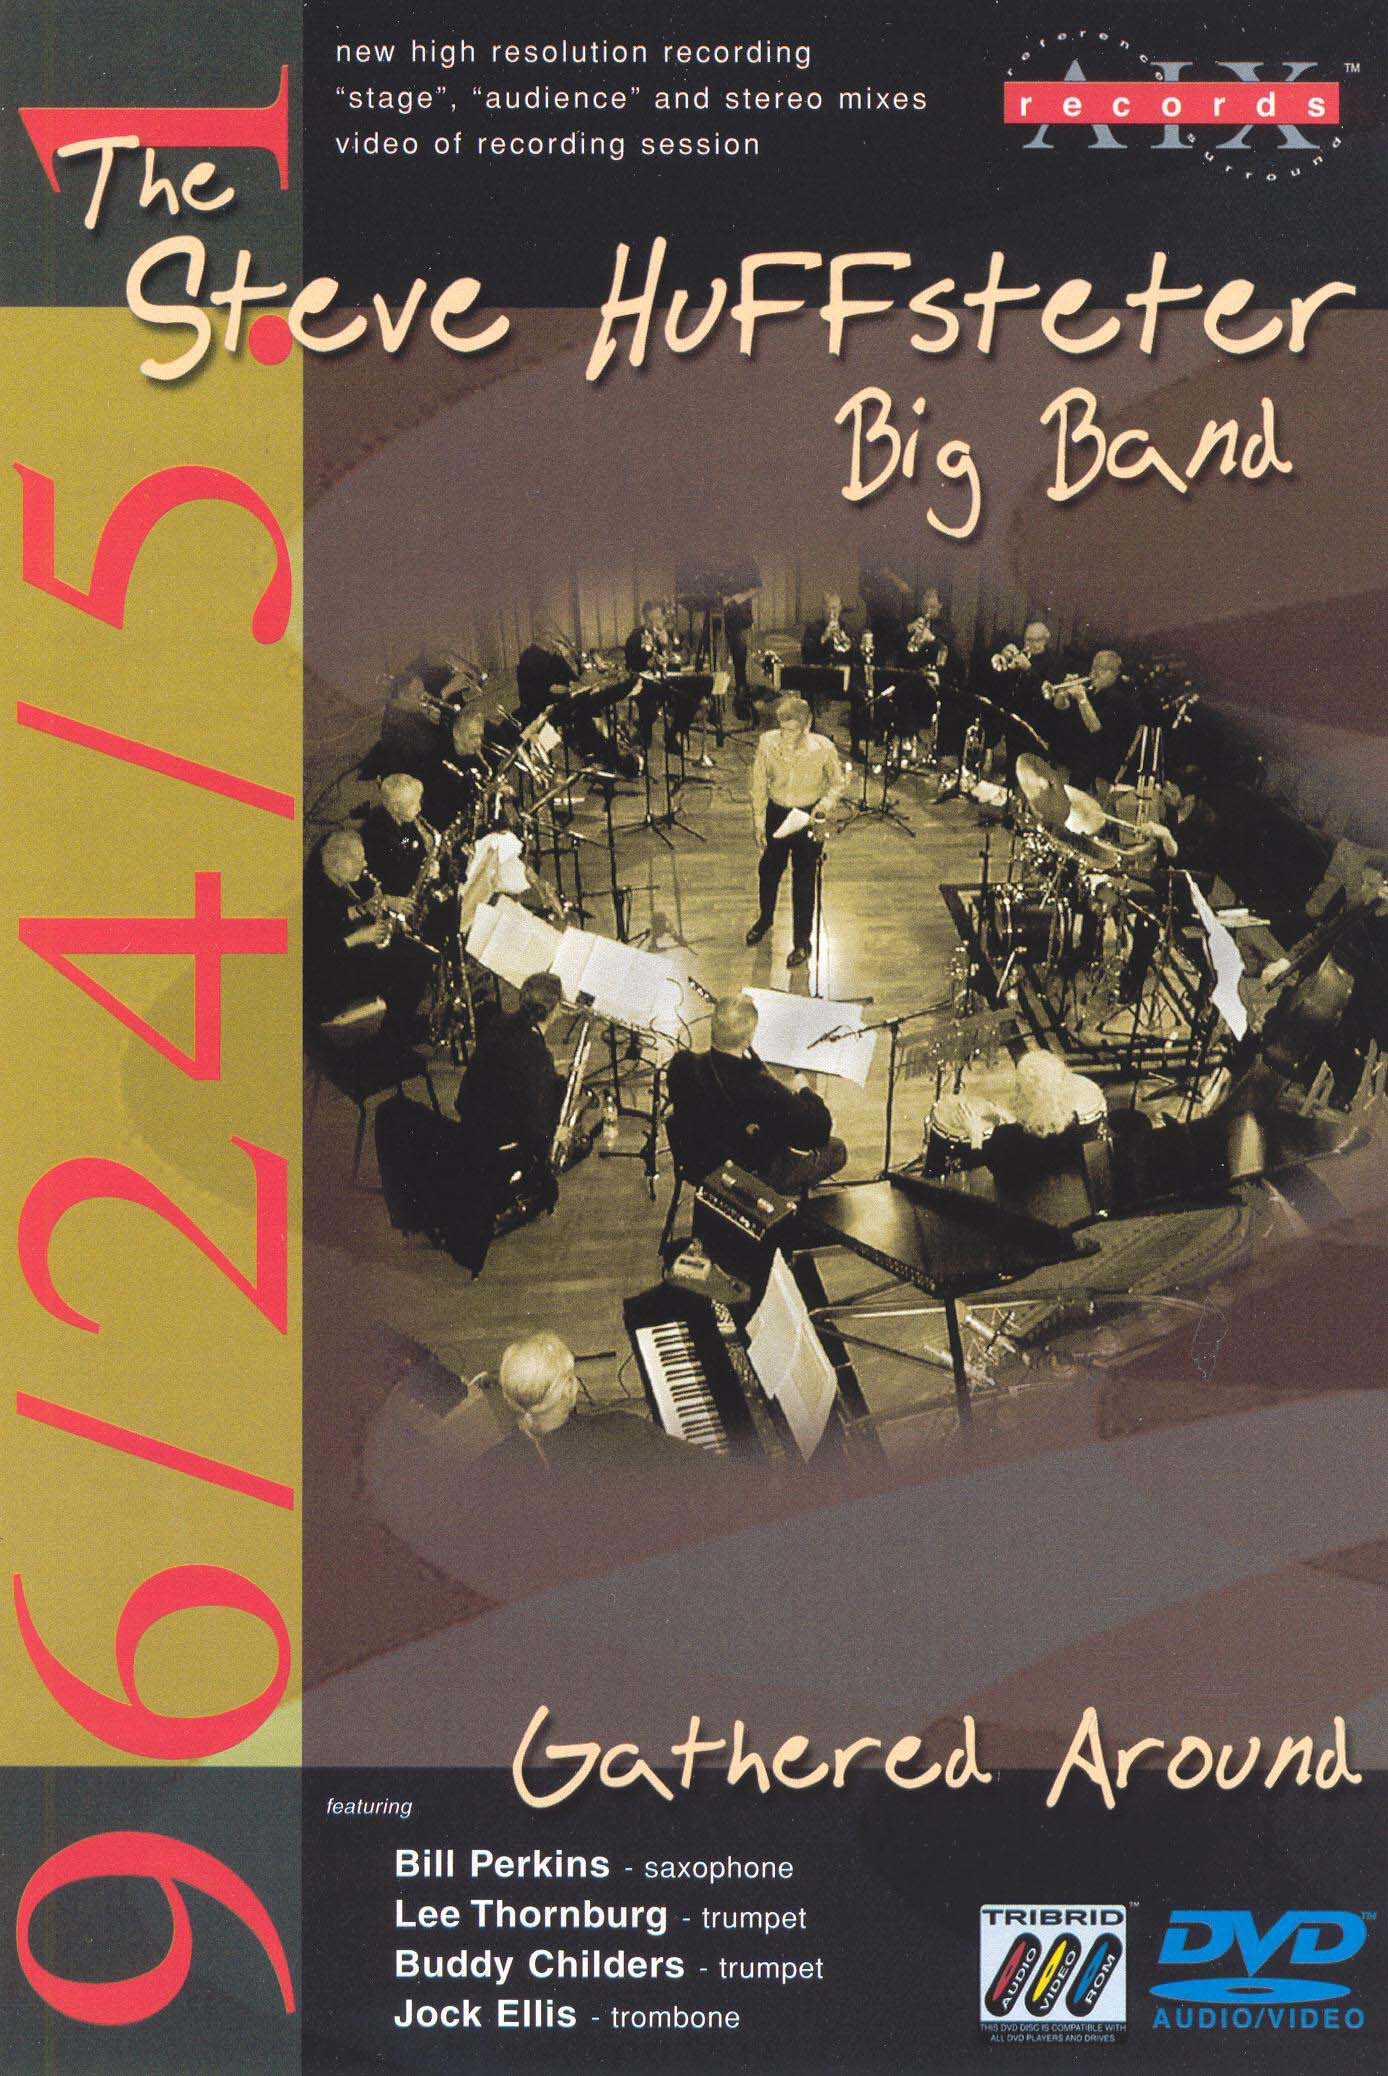 The Steve Huffsteter Big Band: Gathered Around